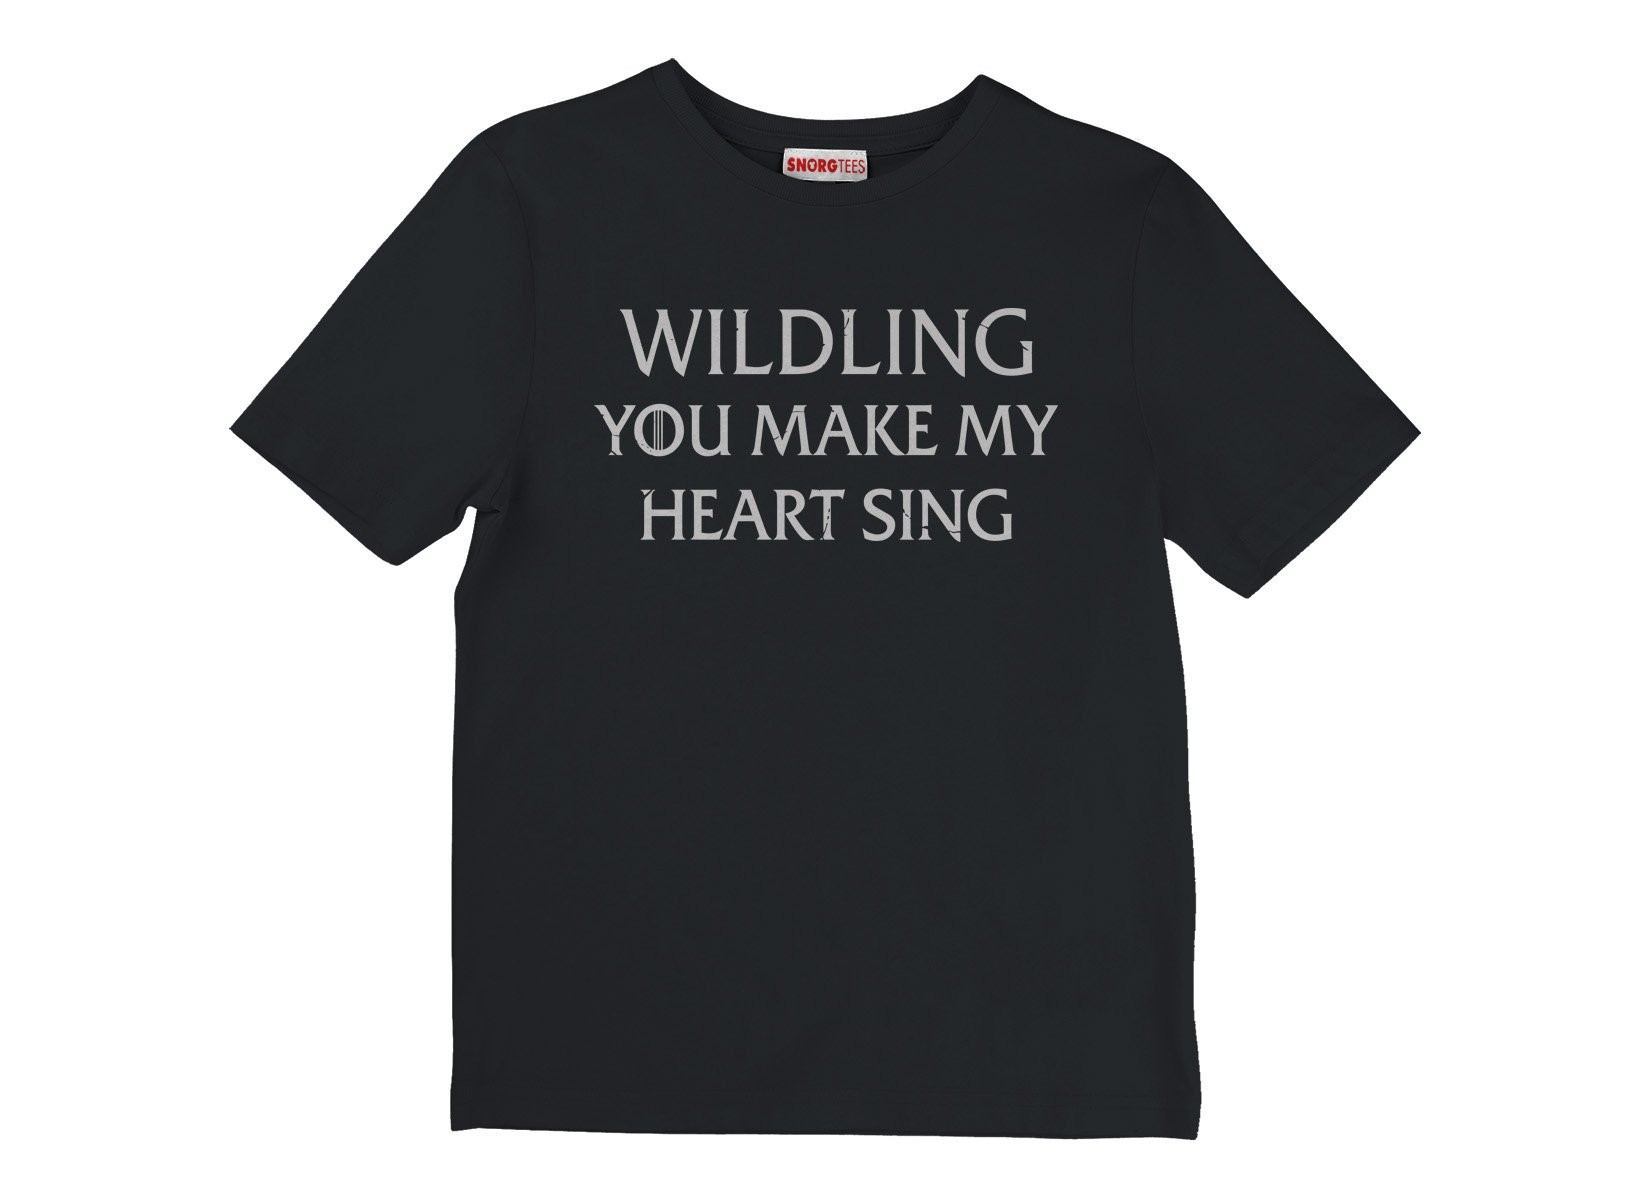 Wildling You Make My Heart Sing on Kids T-Shirt